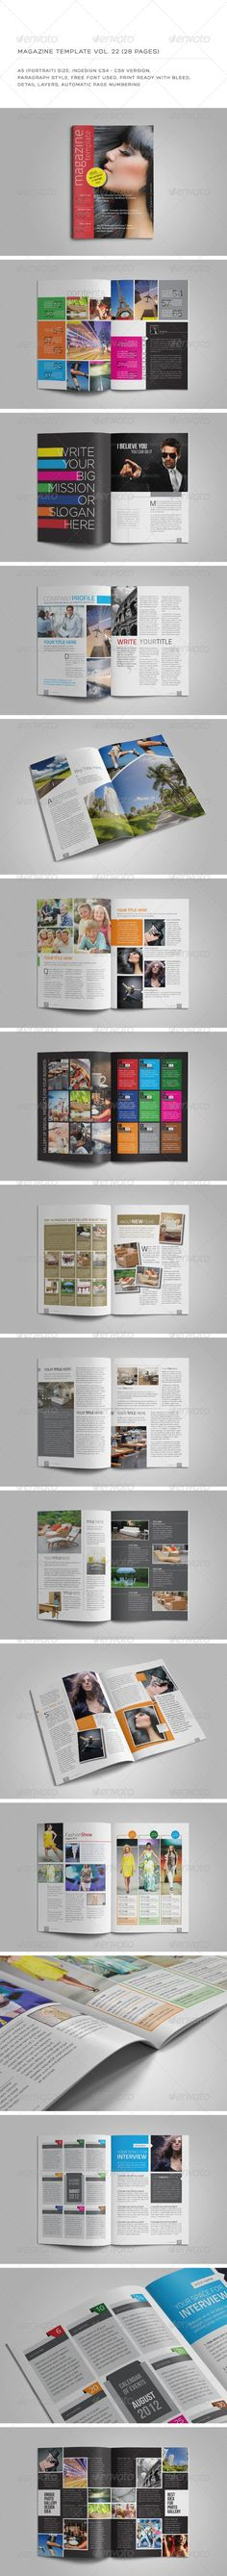 Indesign template vol 22 You can download this template here : http://graphicriver.net/item/a5-portrait-28-pages-mgz-vol-22/5837020?WT.oss_phrase=&WT.oss_rank=30&WT.z_author=Shafura&WT.ac=search_thumb